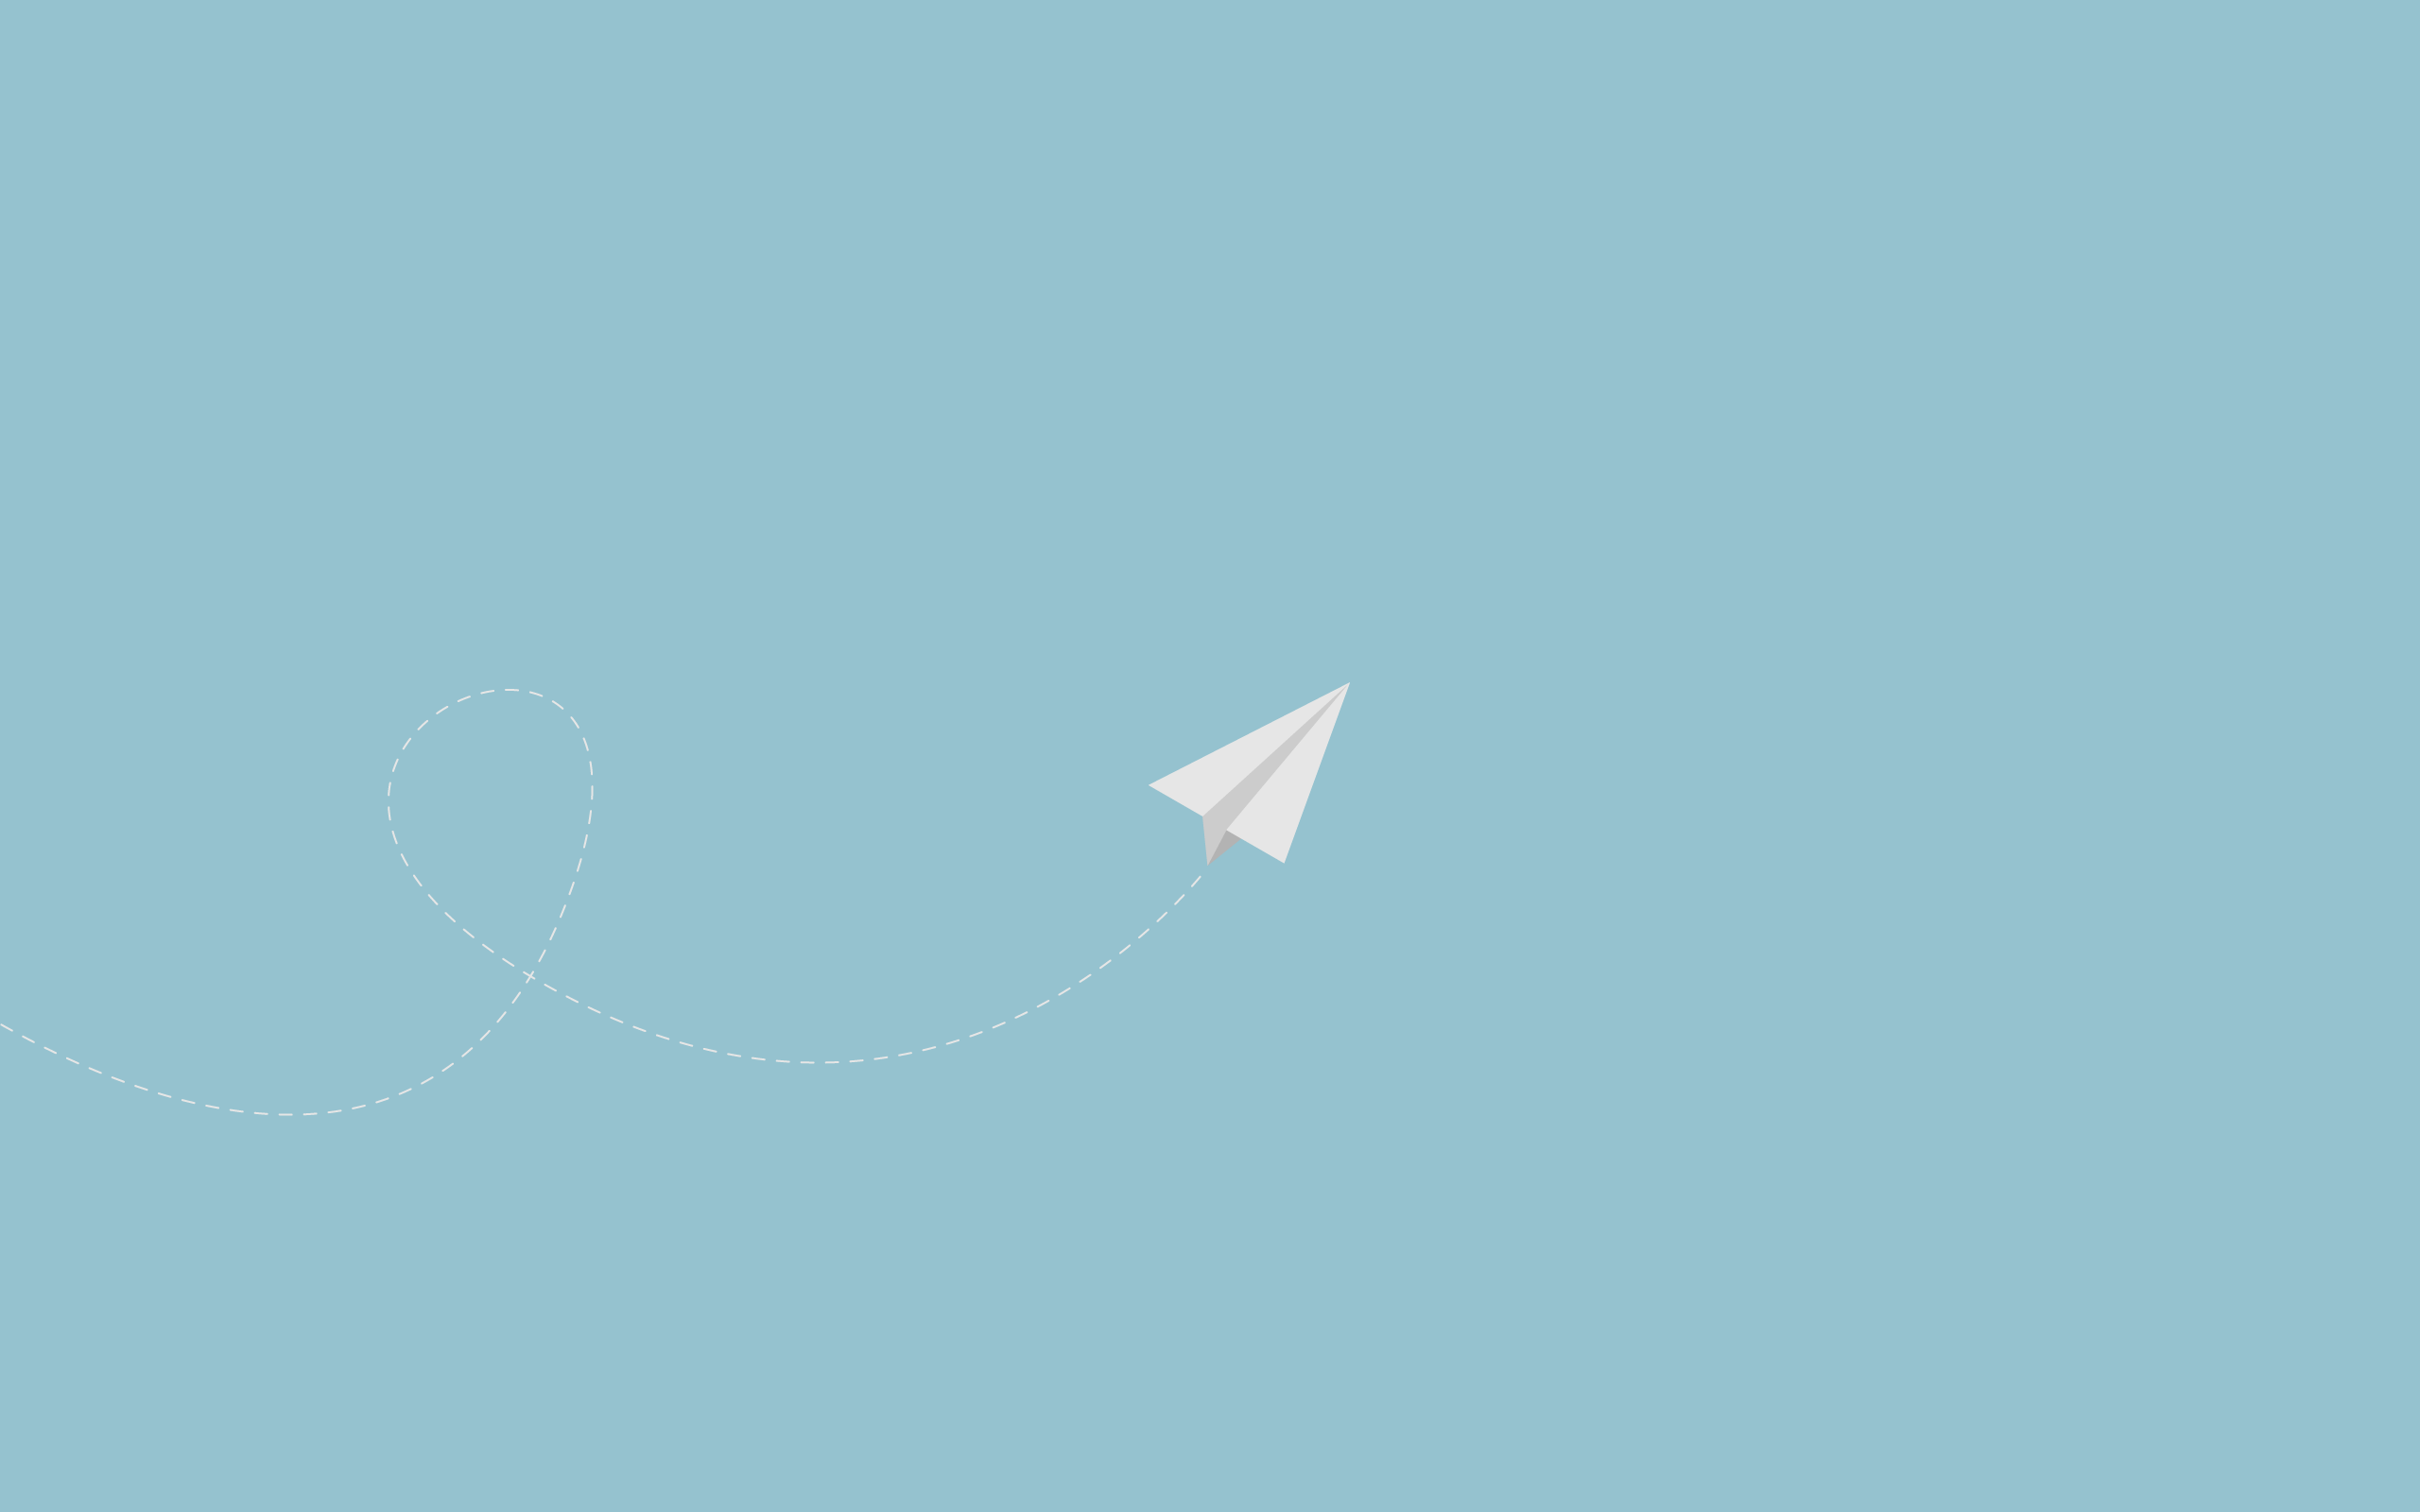 Paper Airplane Wallpaper 43446 2560x1600 Px HDWallSource